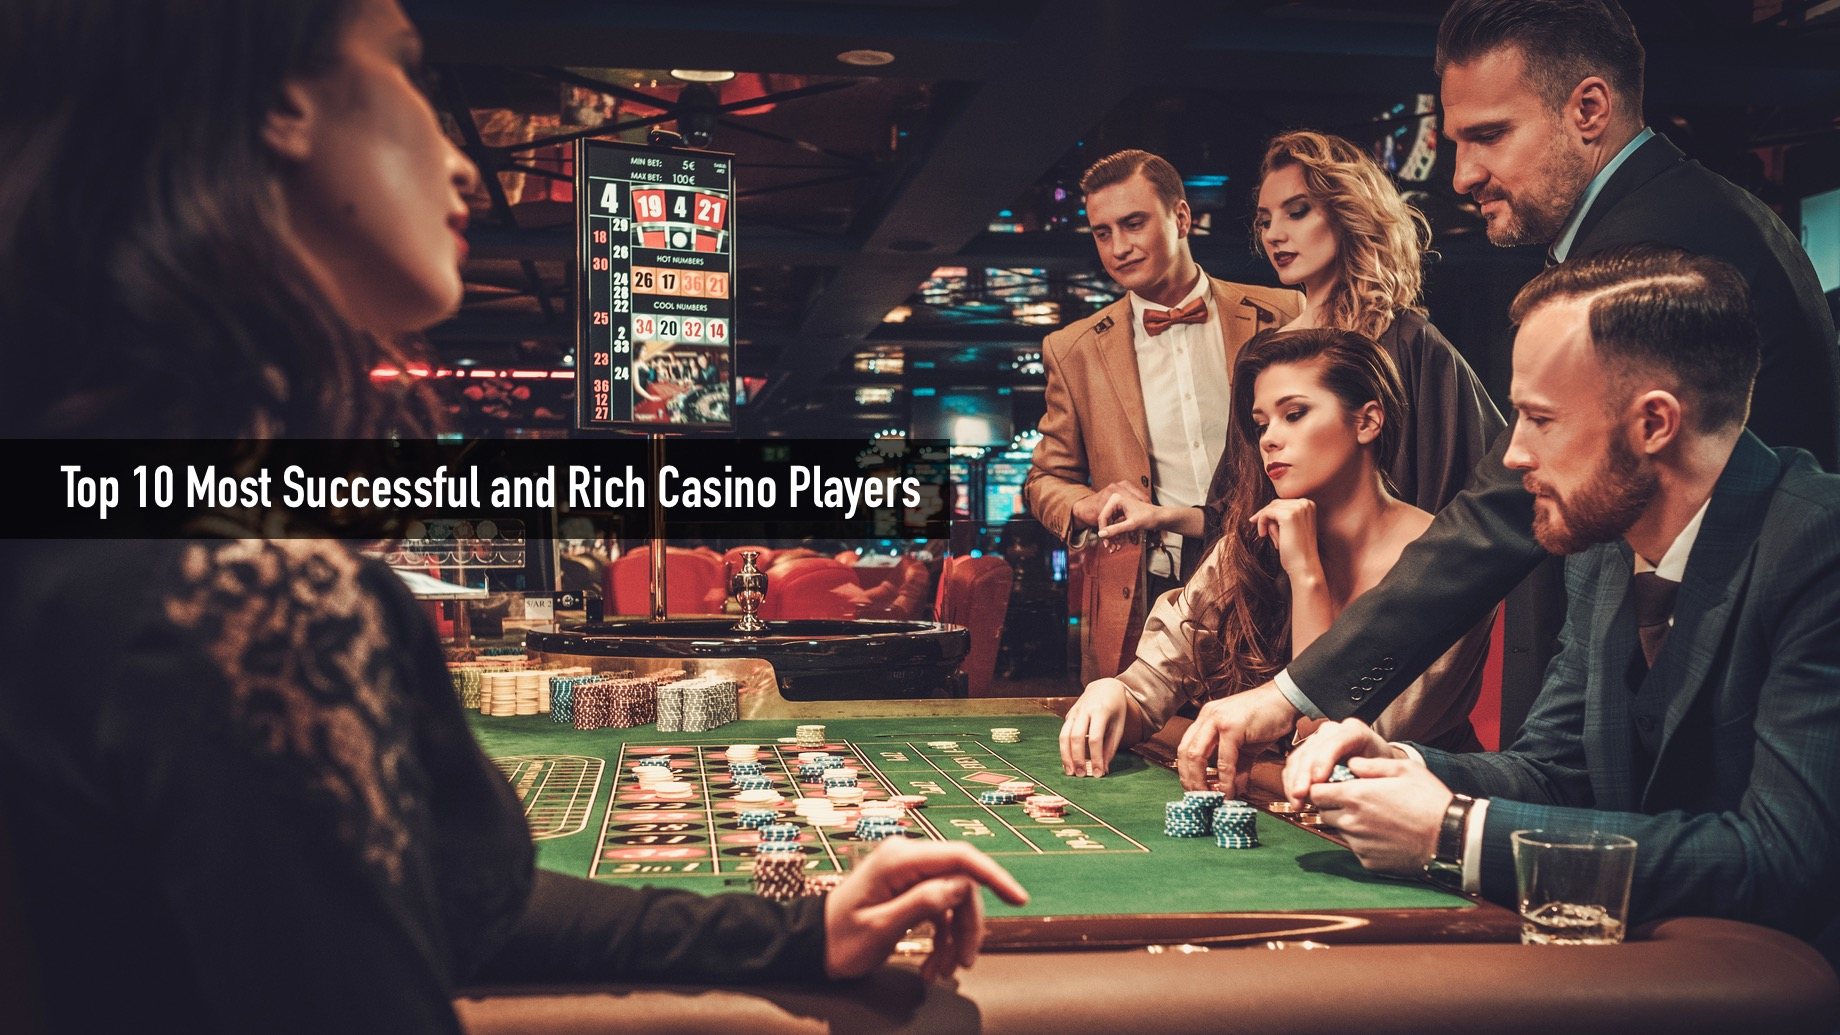 Top 10 Most Successful and Rich Casino Players